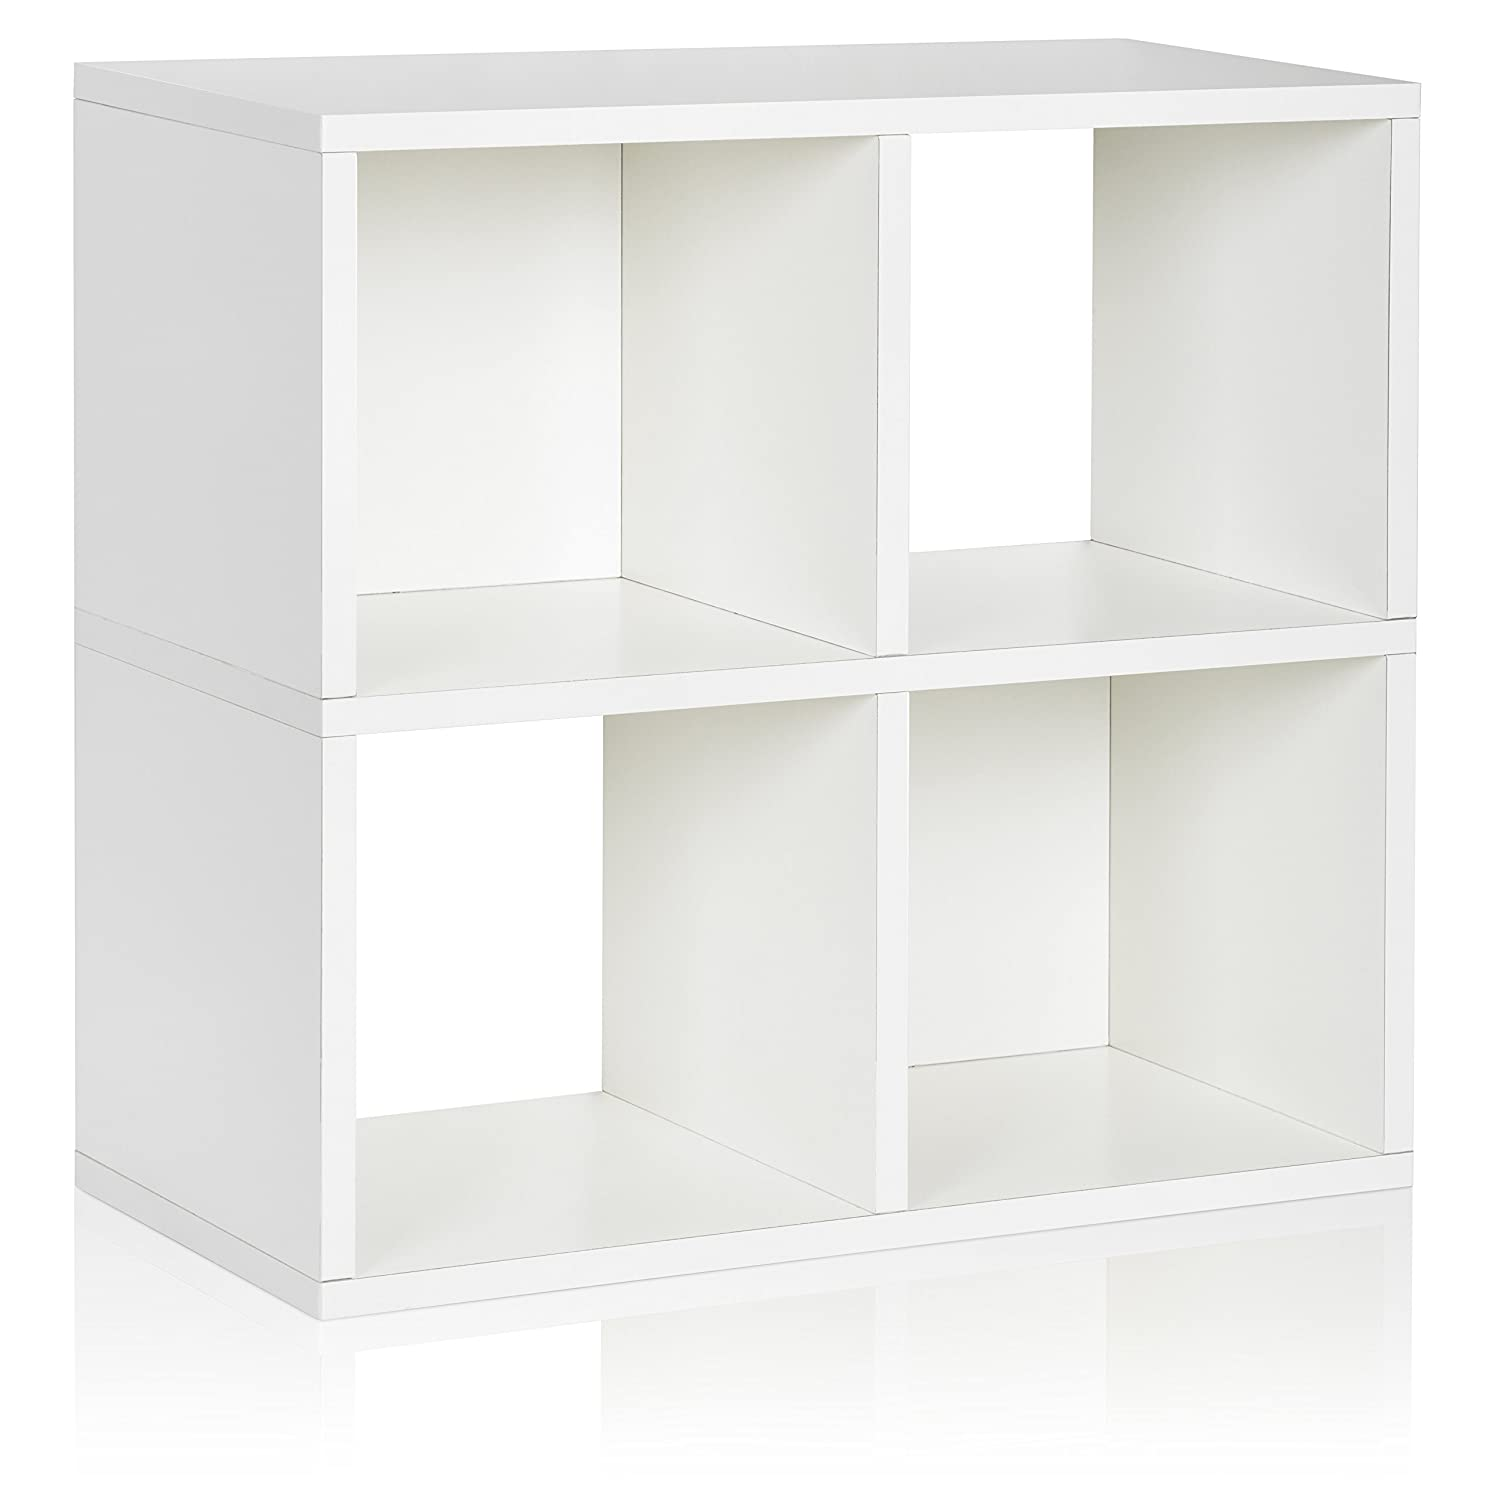 Way Basics WB-4CUBE-WE 4 Cubby Bookcase, Stackable Organizer and Storage Shelf, White PS-SC-2-EO